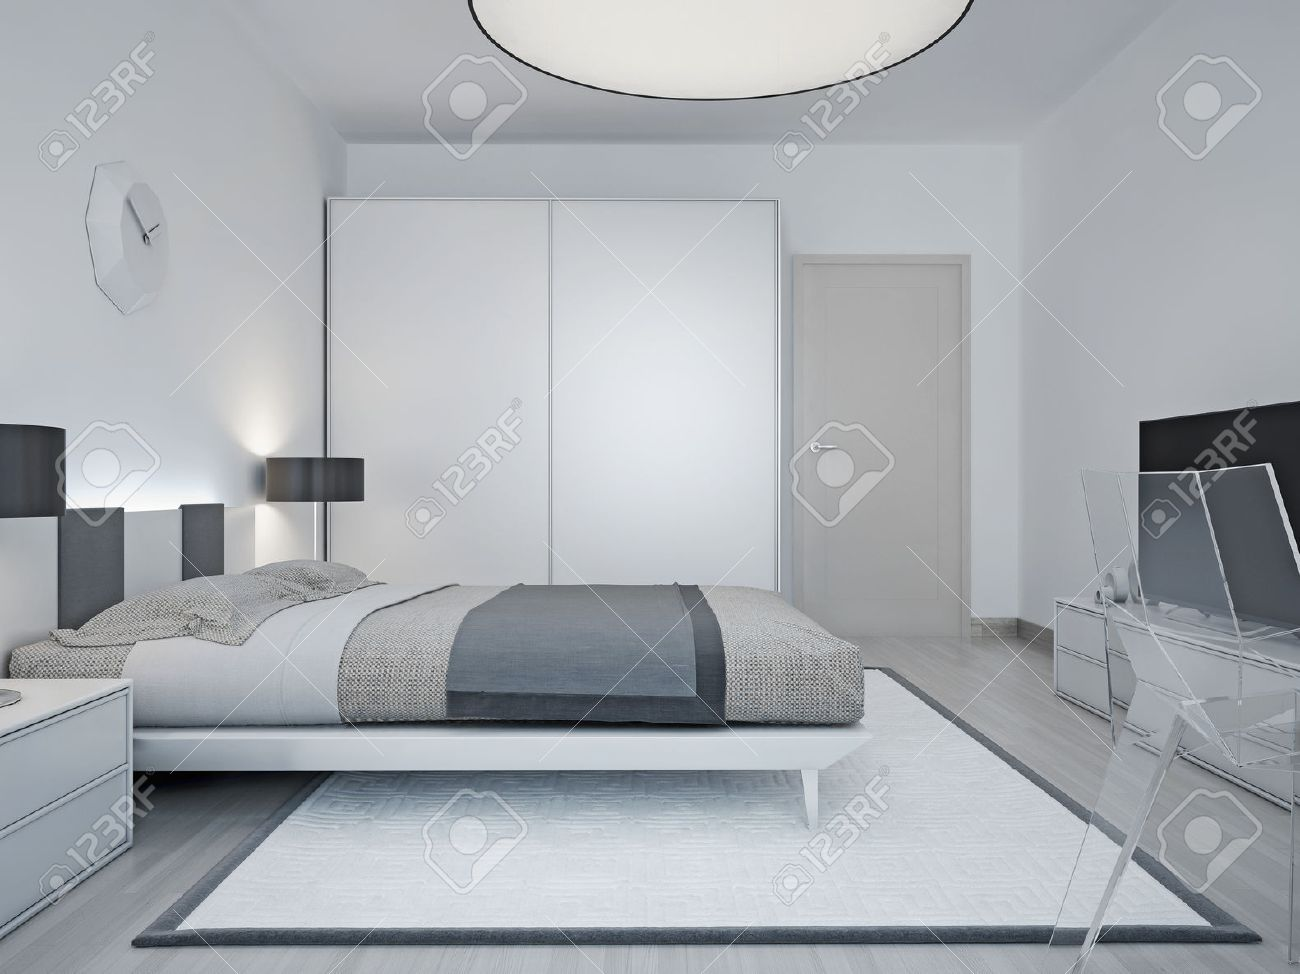 Modern Hotel Room modern hotel room design. room with luxury bed, black lamp